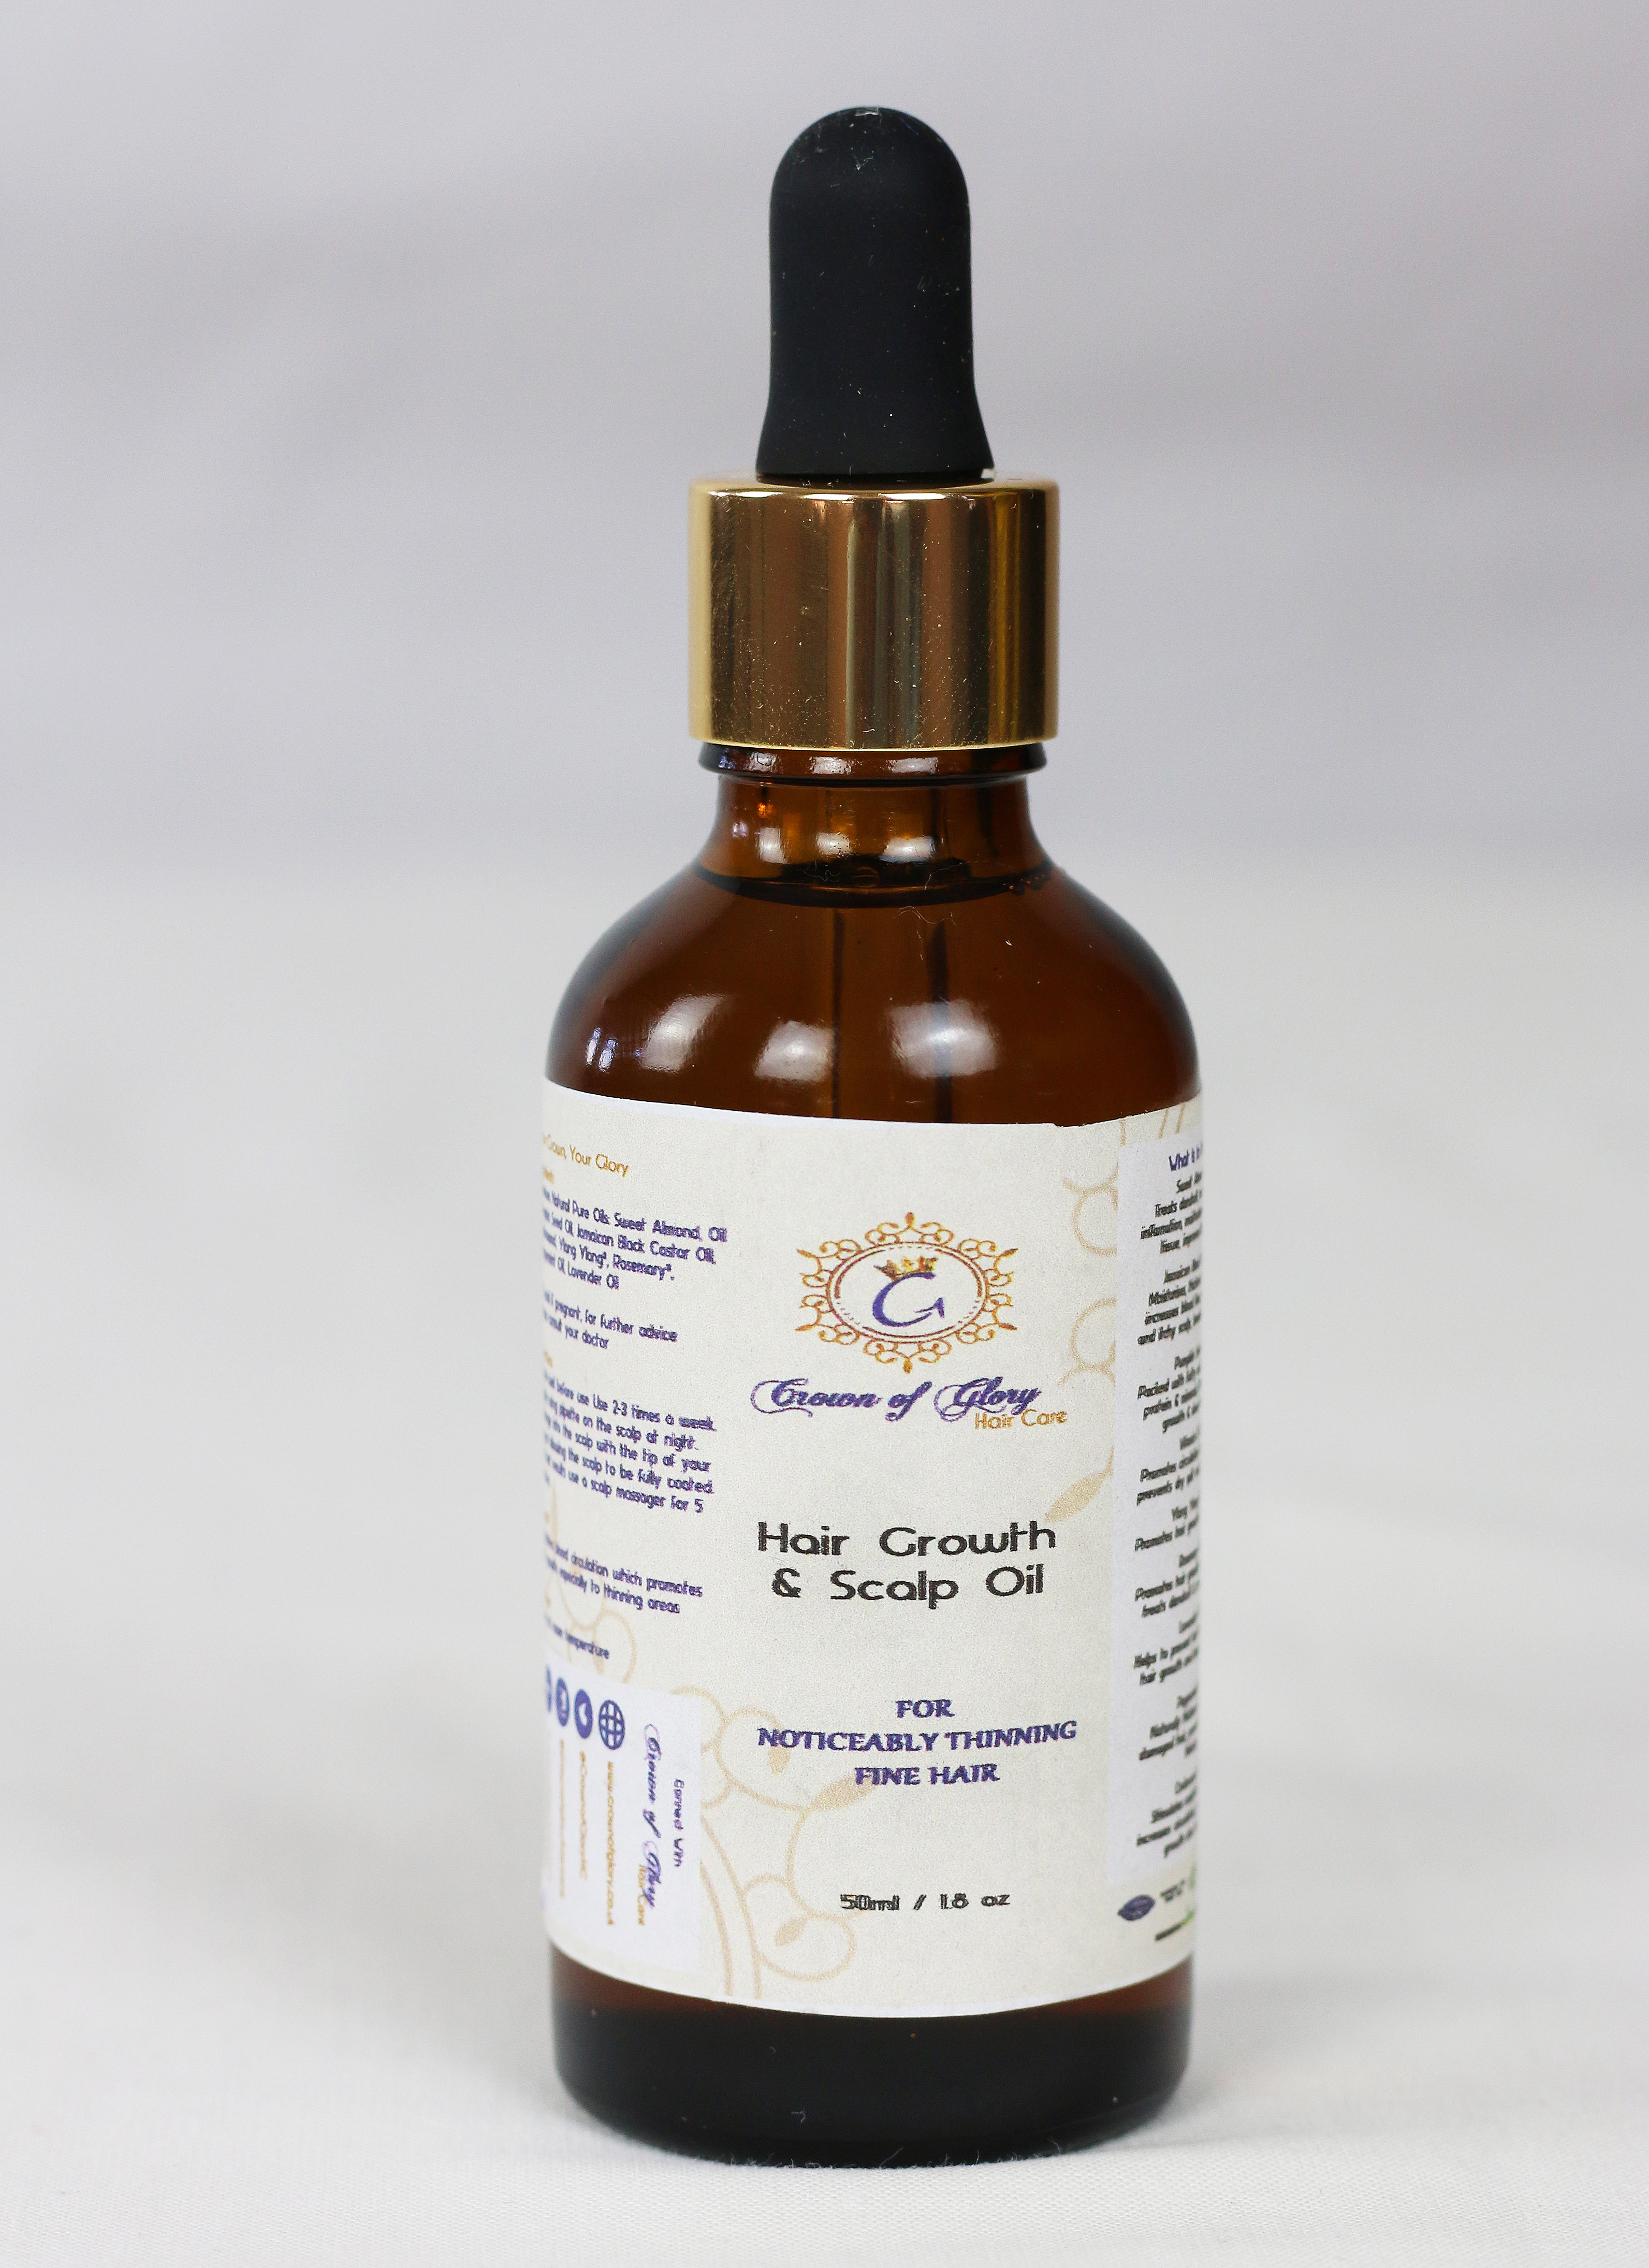 hair growth oil crown of glory alopecia thinning make hair thicker